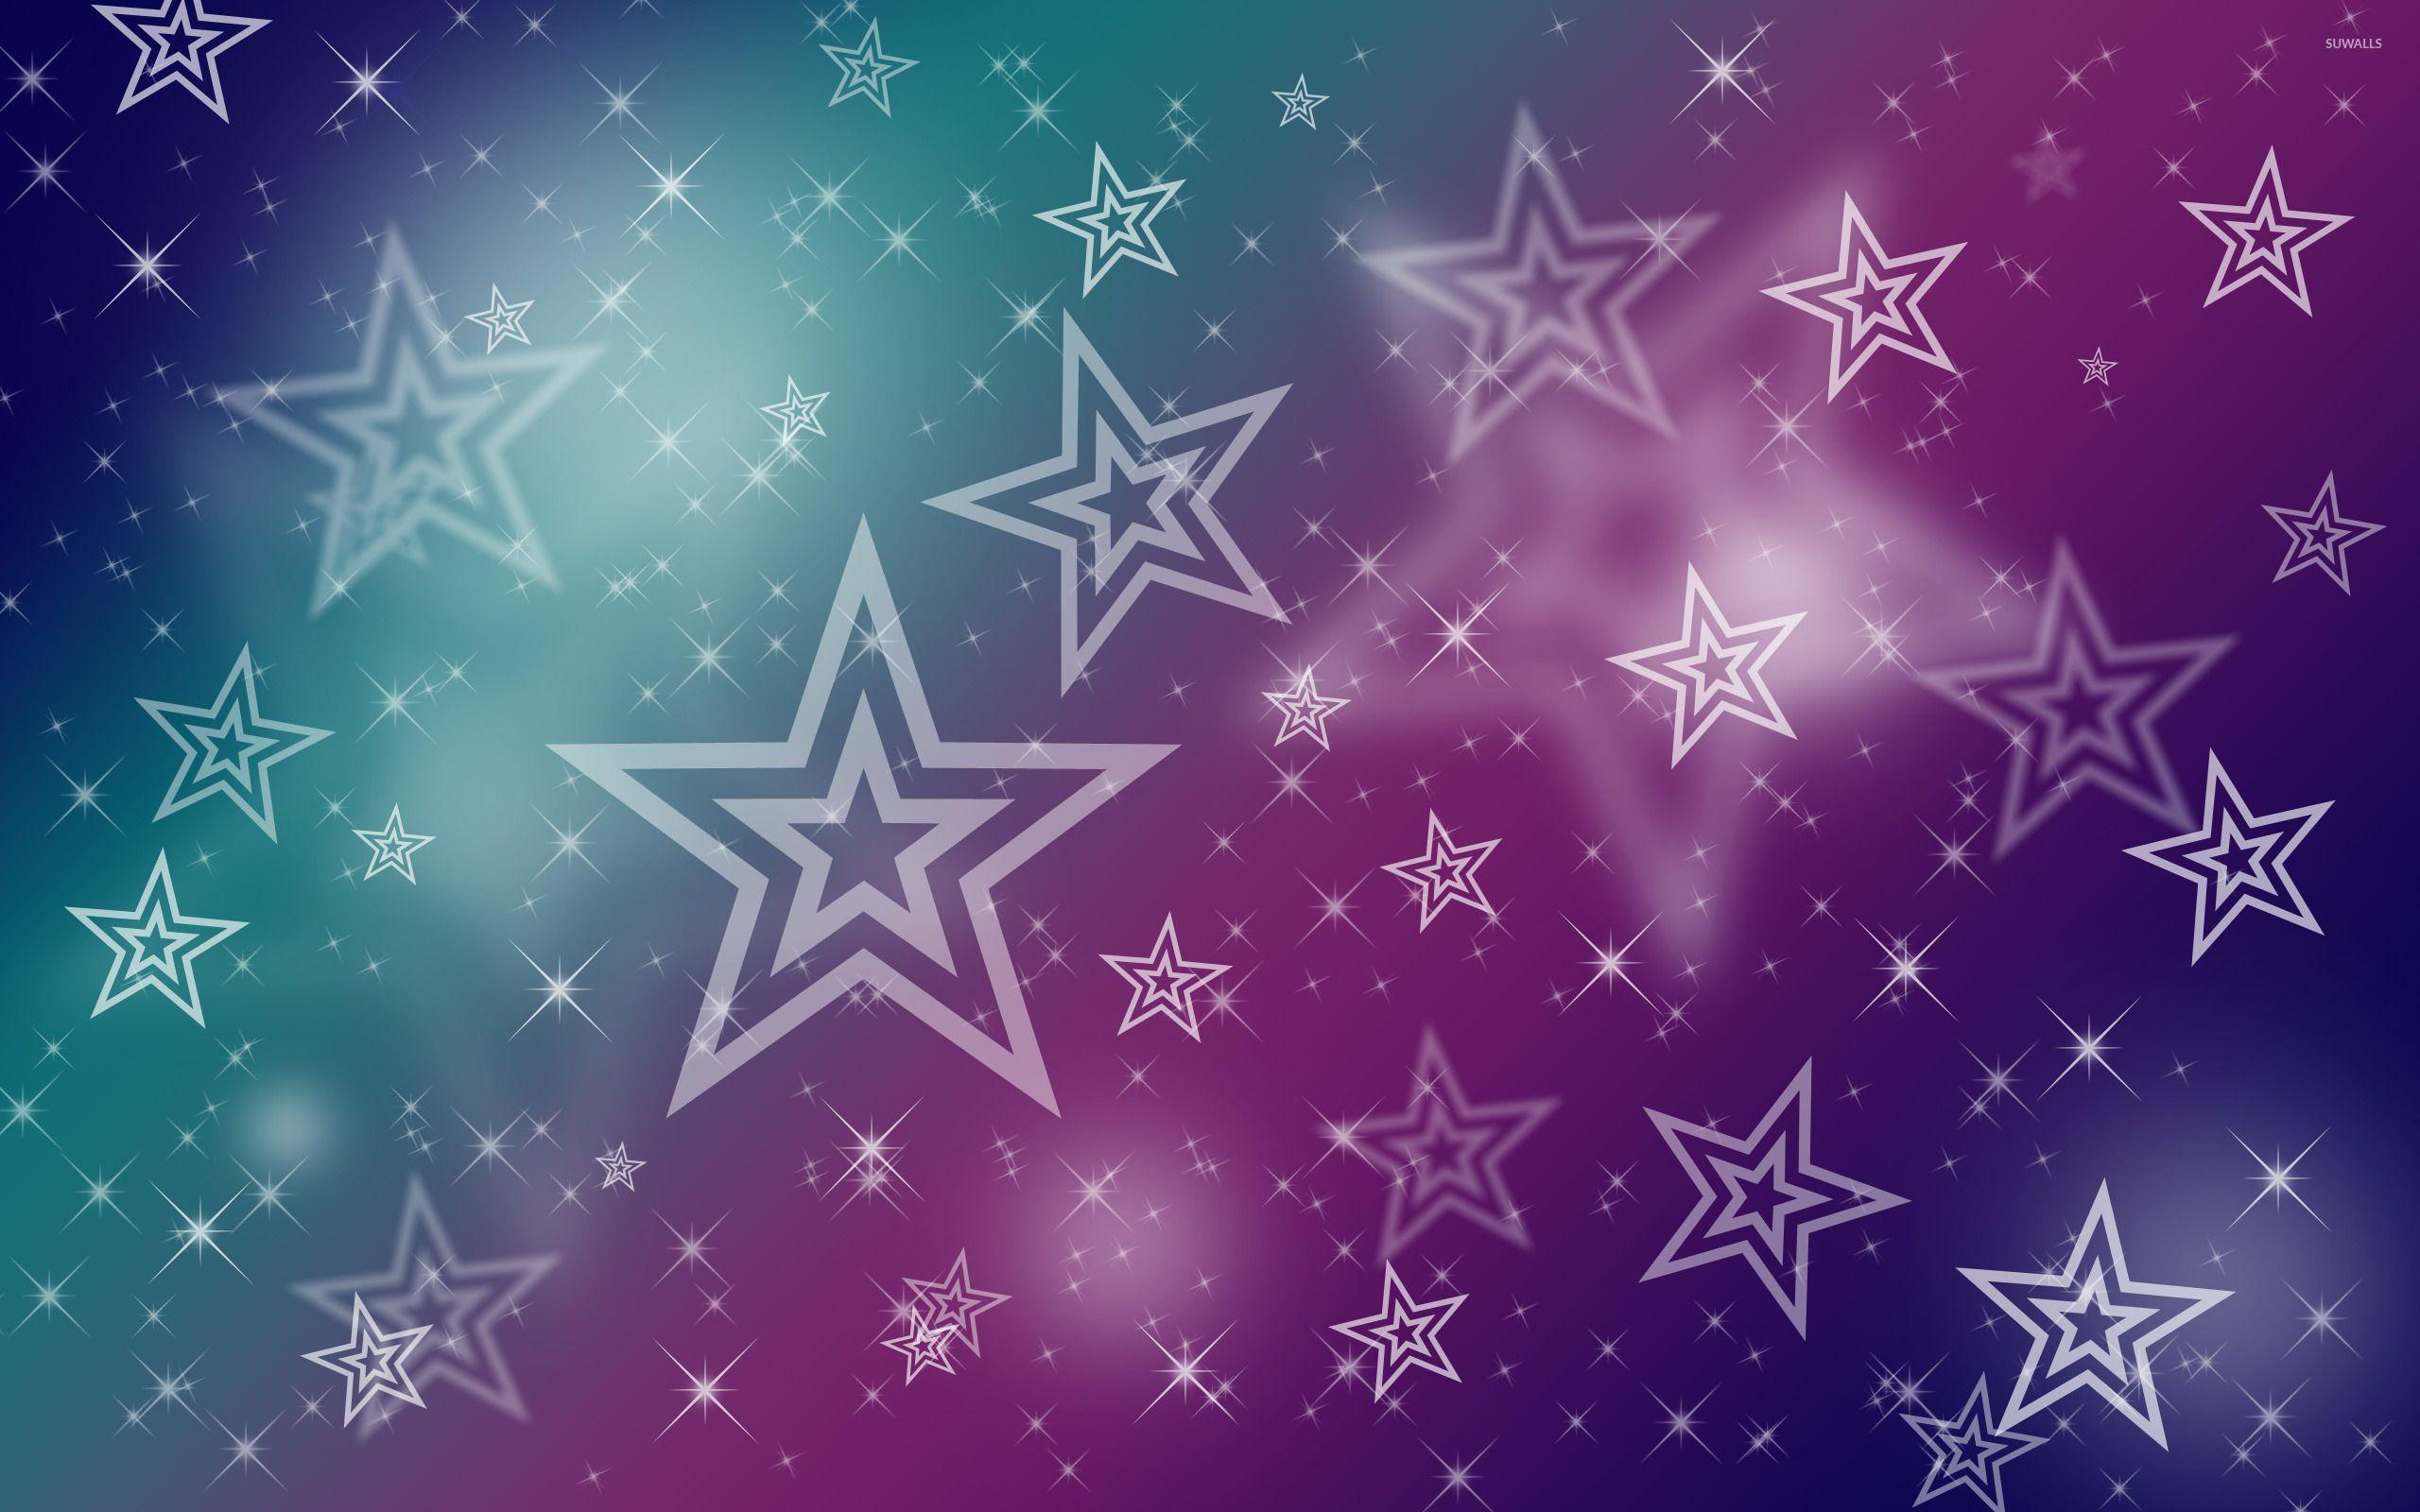 Stars wallpaper - Abstract wallpapers - #11593